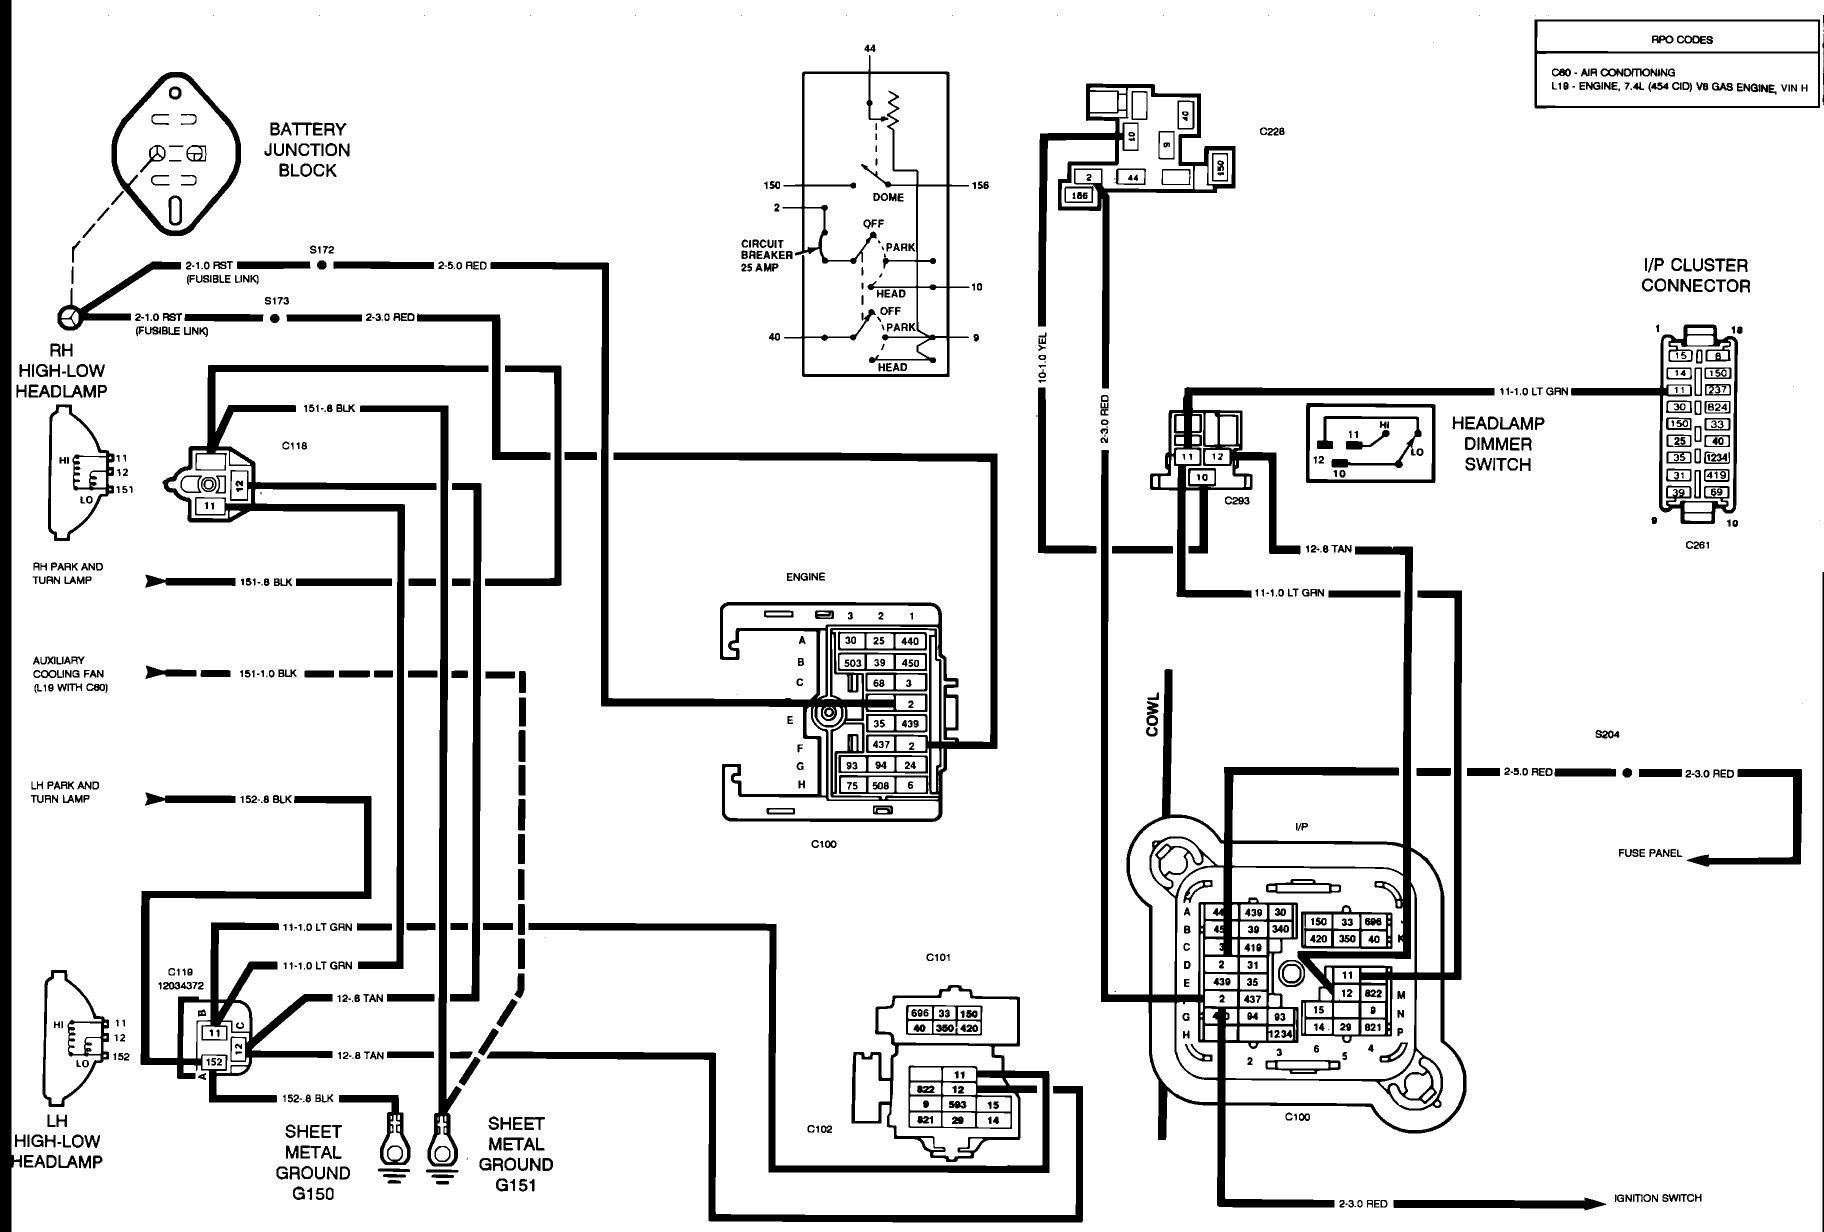 New Vw Golf 4 Central Locking Wiring Diagram #diagram ... Vw Golf Central Locking Wiring Diagram on vw thing wiring diagram, vw golf timing, vw type 3 wiring diagram, vw golf oil filter, vw bus wiring diagram, vw golf steering, vw golf instruction manual, yamaha golf wiring diagram, vw golf distributor, vw golf ignition switch, vw golf wire harness, vw golf air conditioning, vw r32 wiring diagram, vw golf specification, vw golf relay location, vw polo wiring-diagram, vw beetle wiring diagram, vw wiper motor wiring diagram, vw golf transmission diagram, vw golf oil cooler,